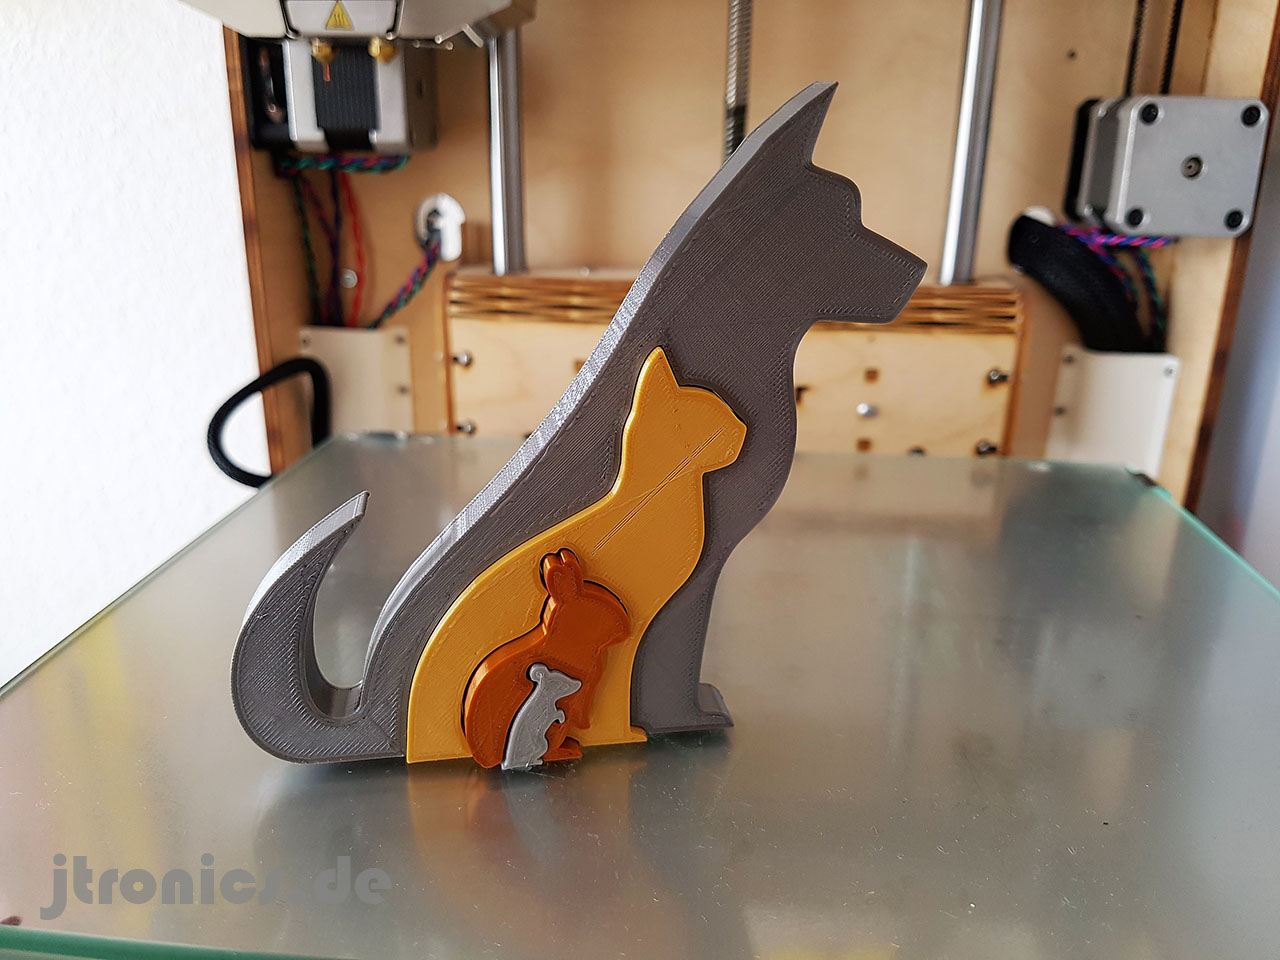 20190618_123241.jpg Download free STL file Animal Silhouette - Dog Cat Rabbit Mouse • 3D printing template, jtronics